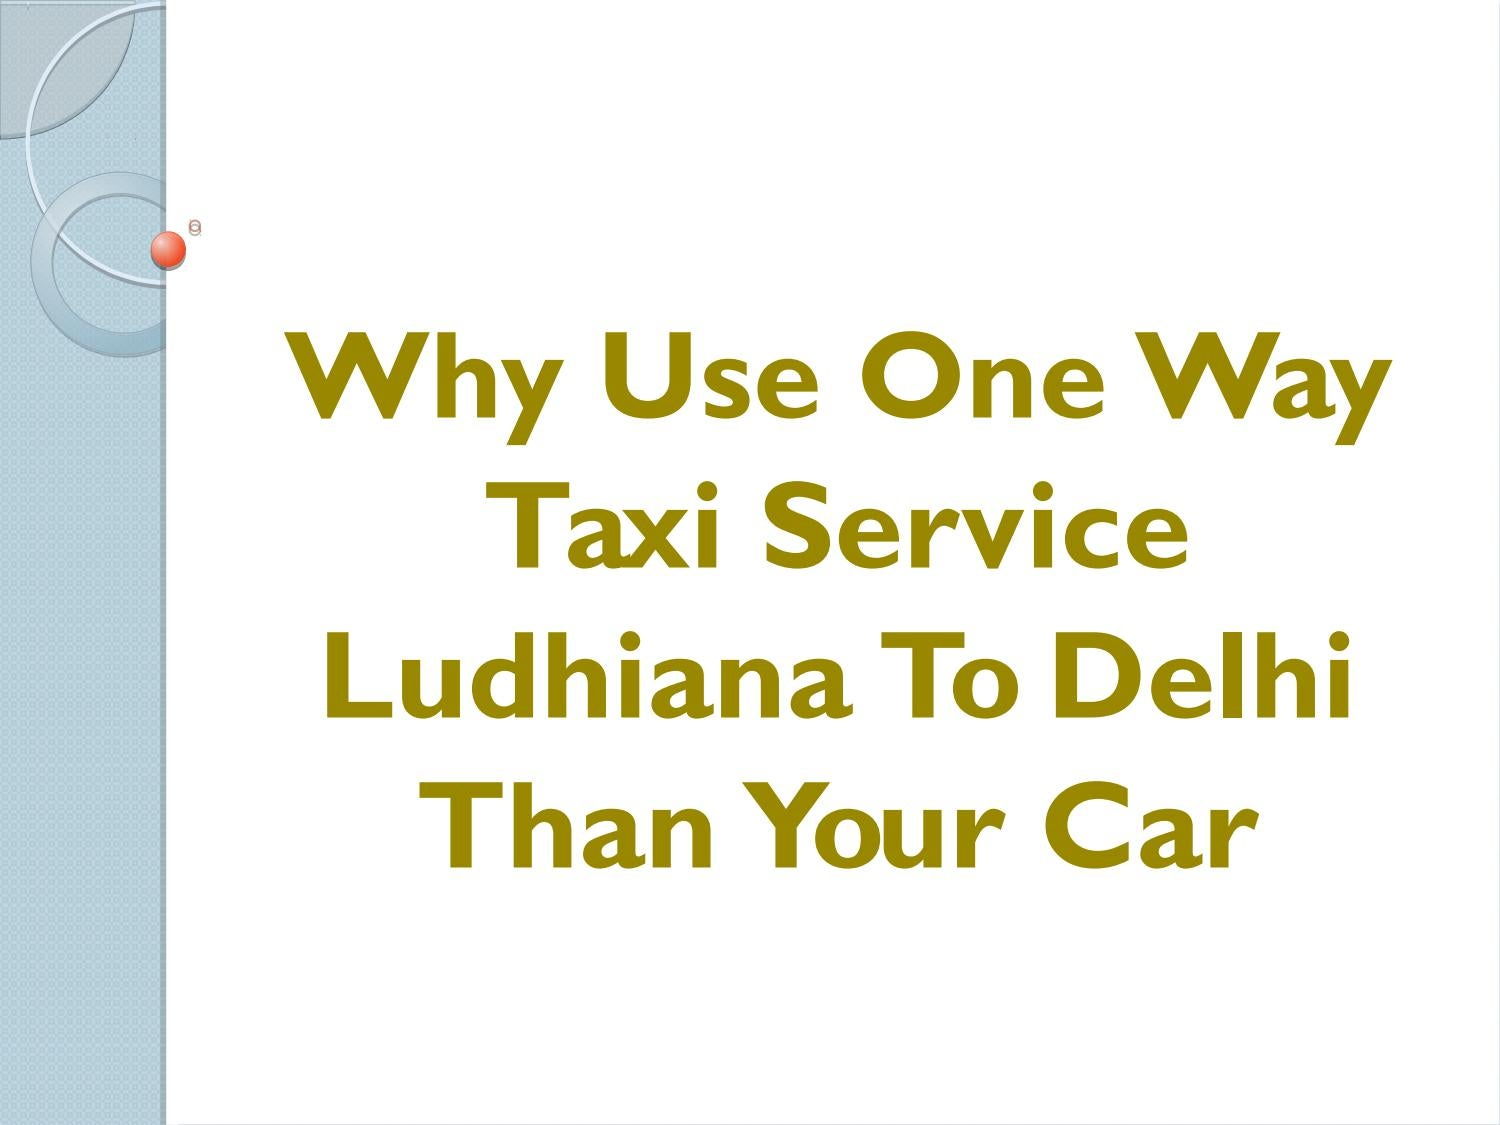 Why Use One Way Taxi Service Ludhiana To Delhi Than Your Car By Taxi